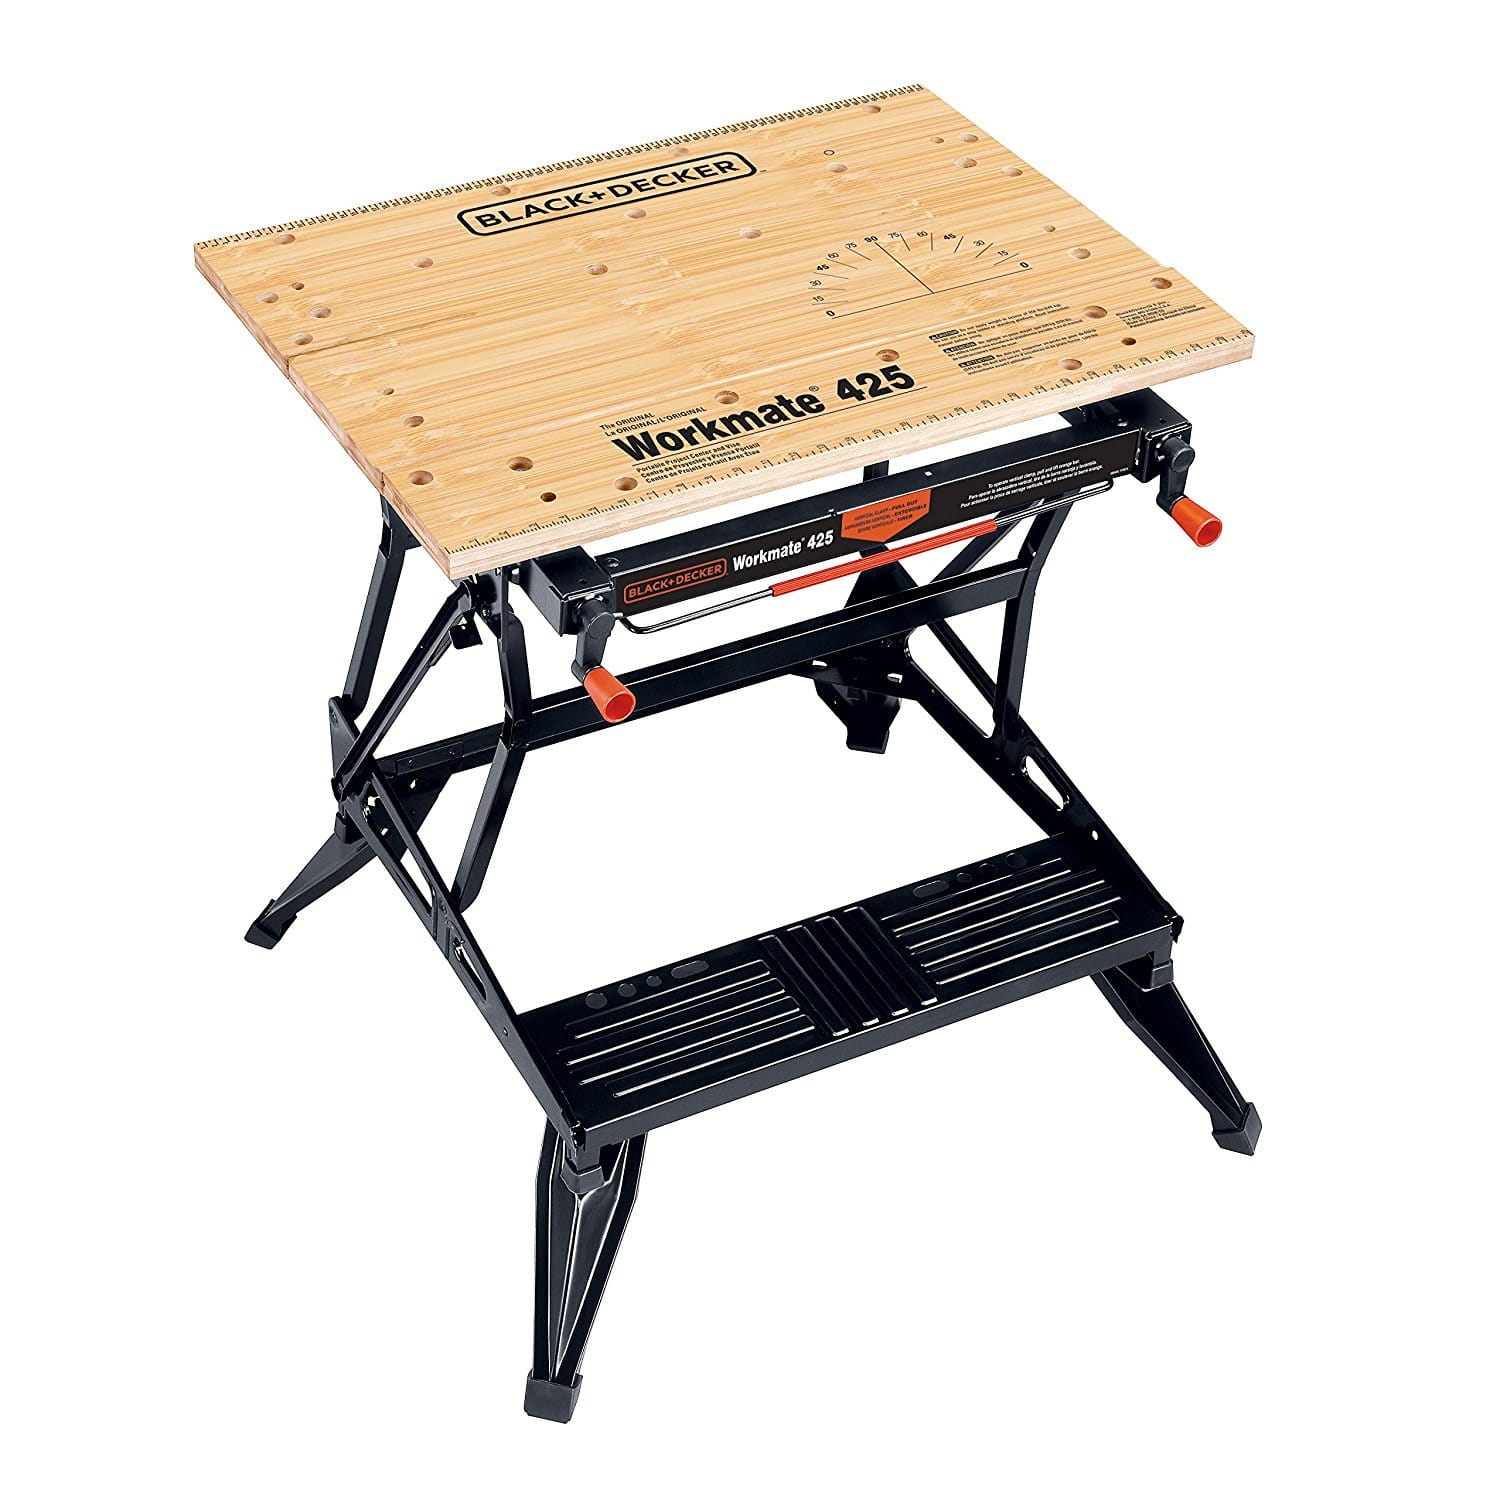 Black & Decker WM425-A Portable 550-Pound Project Center & Vice Stand $79.99 + Free Shipping via Amazon